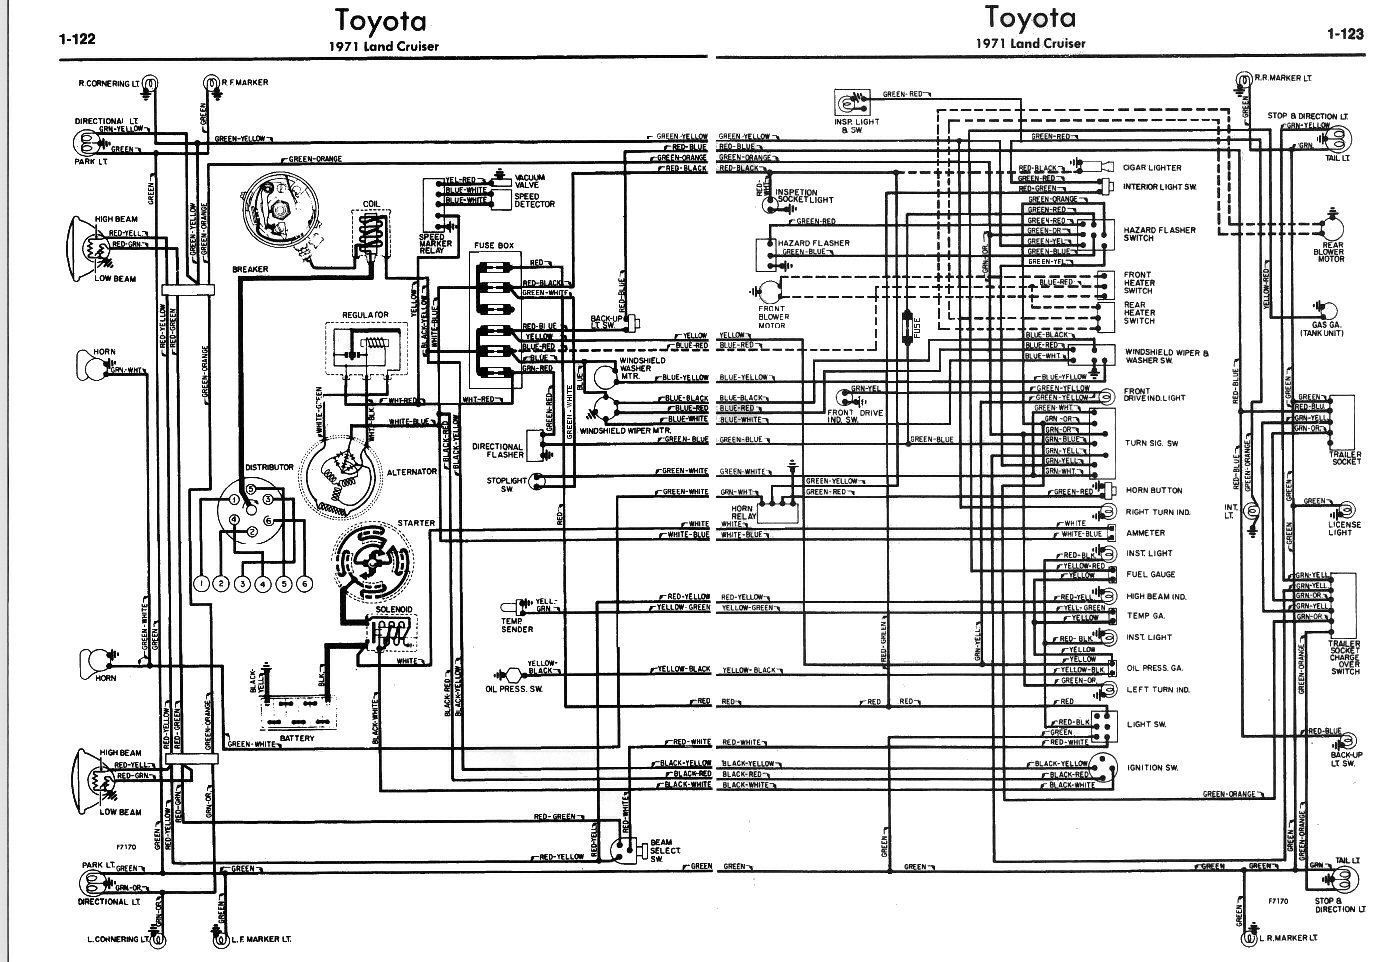 1971 toyota fj40 wiring diagram toyota wiring diagrams instruction vdj79 wiring diagram at gsmx.co